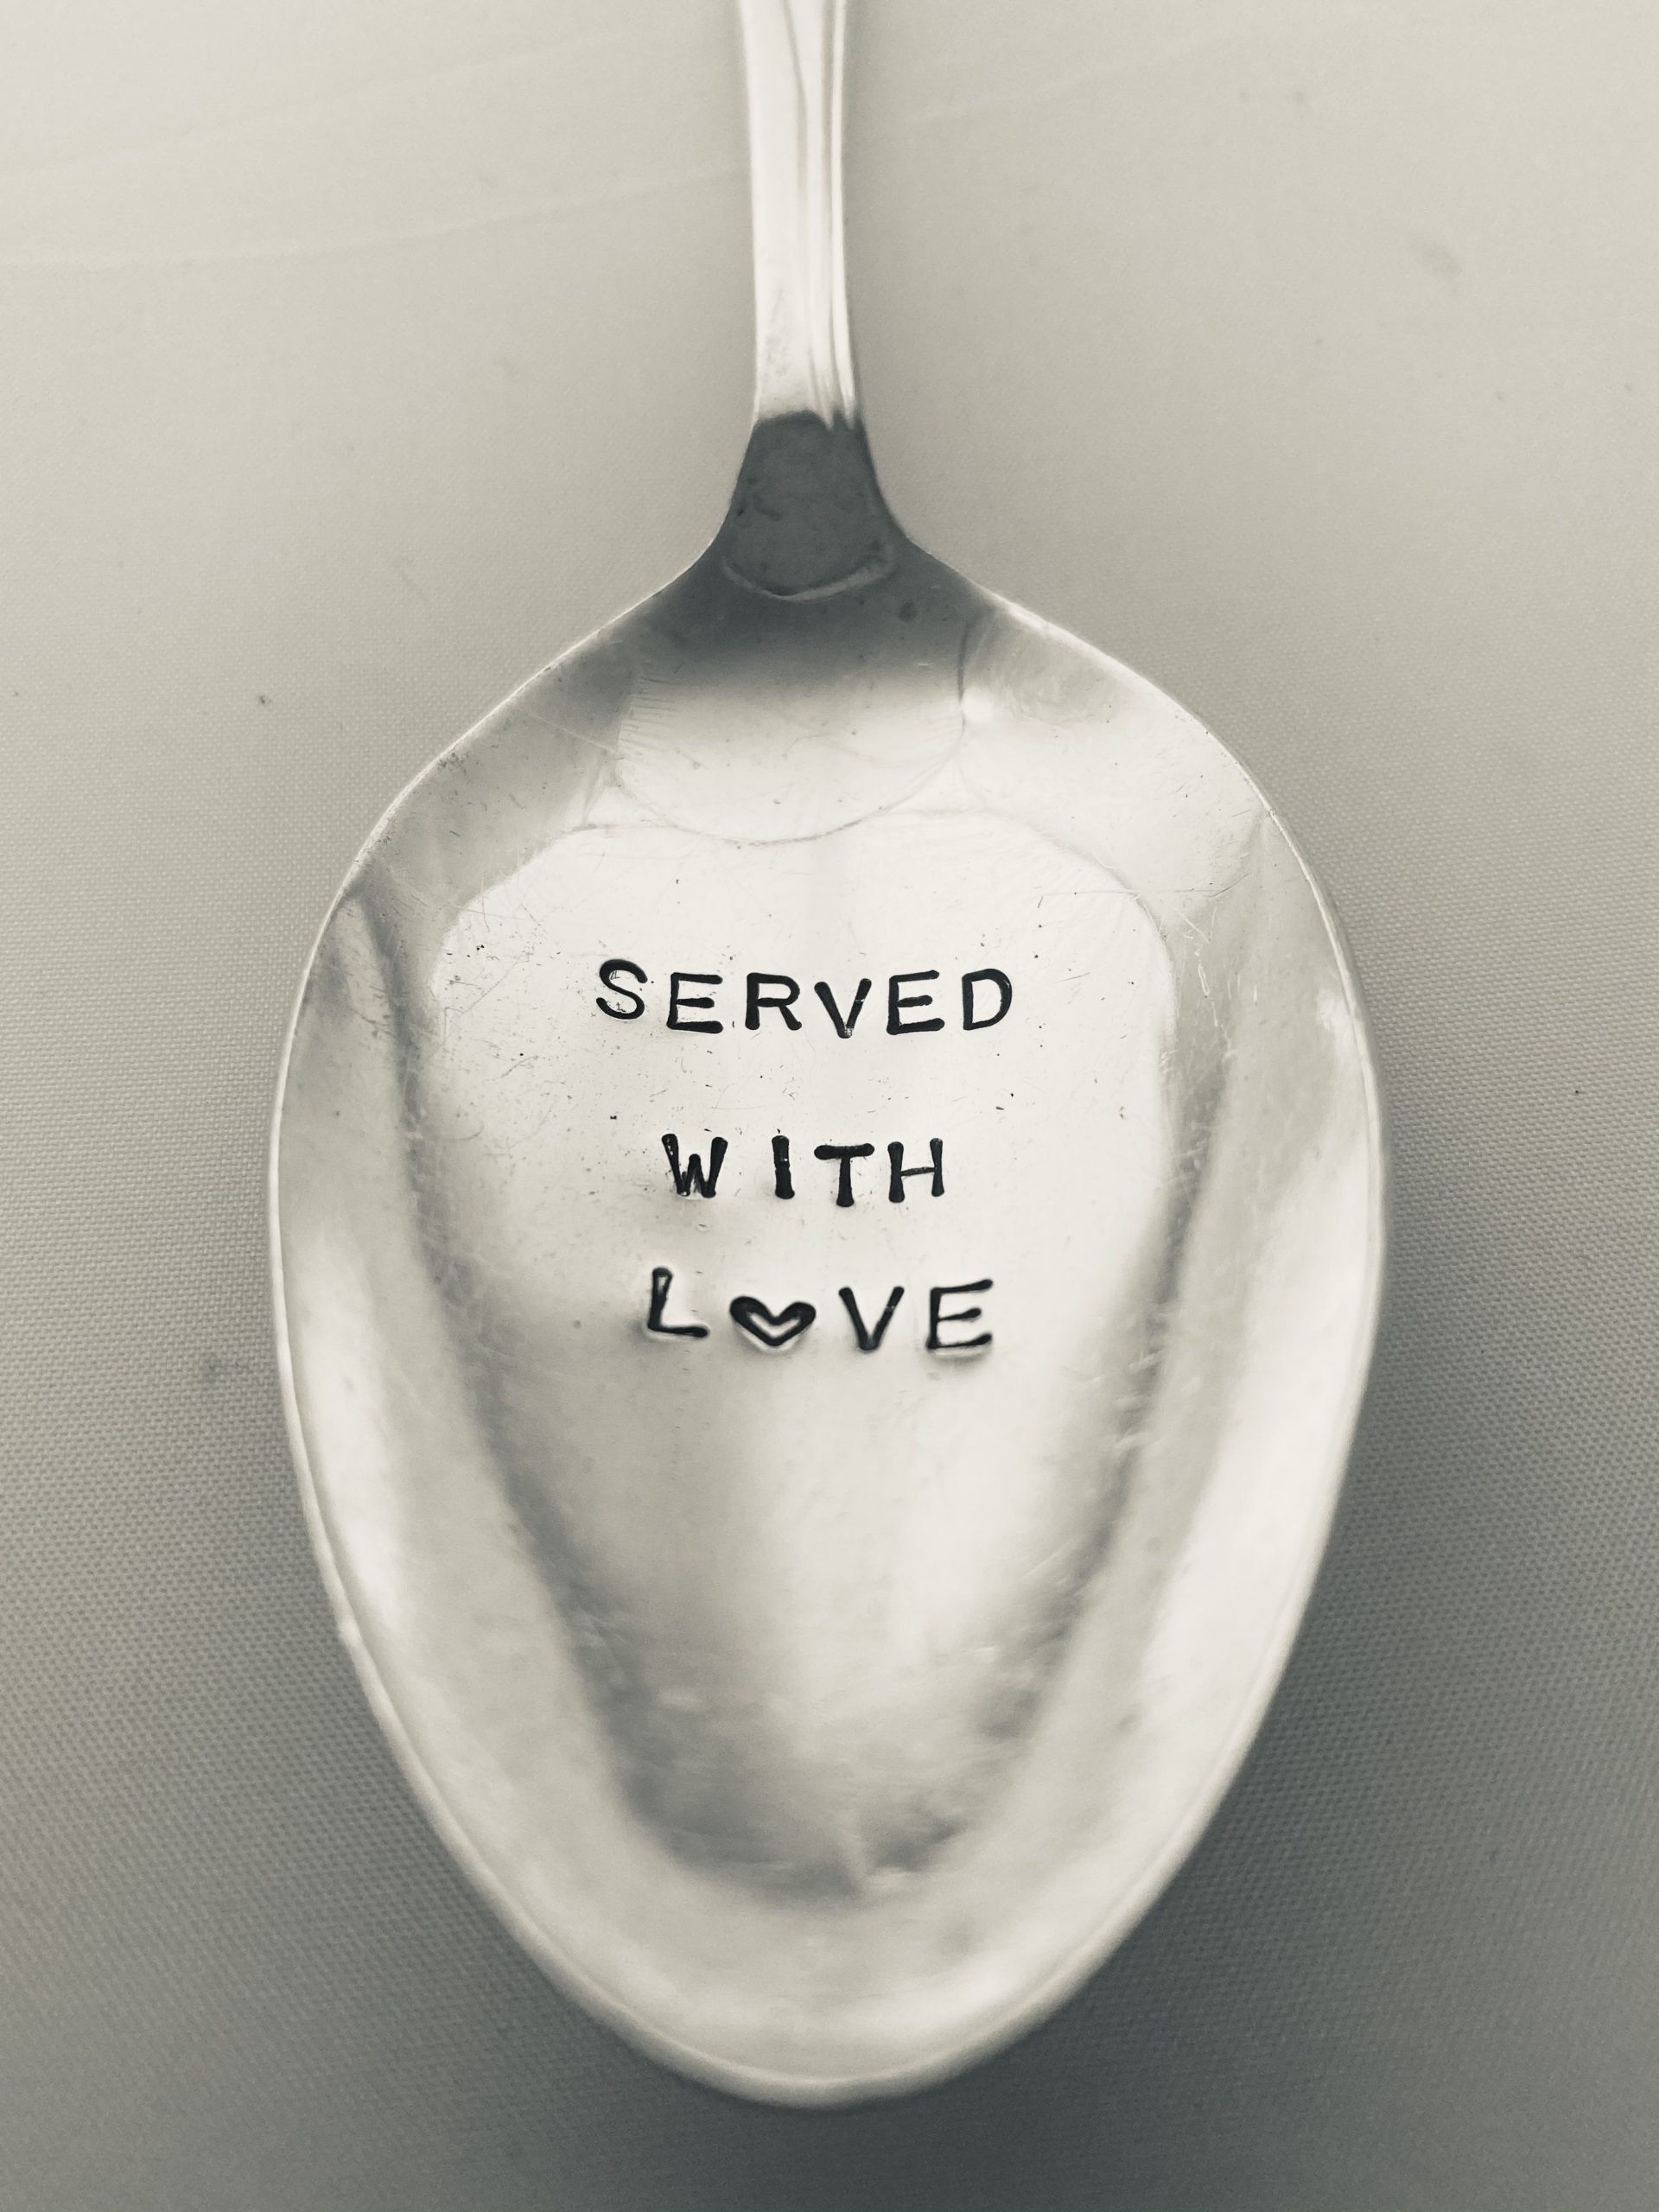 Served with Love Serving Spoon Medium Size via @chooicenz